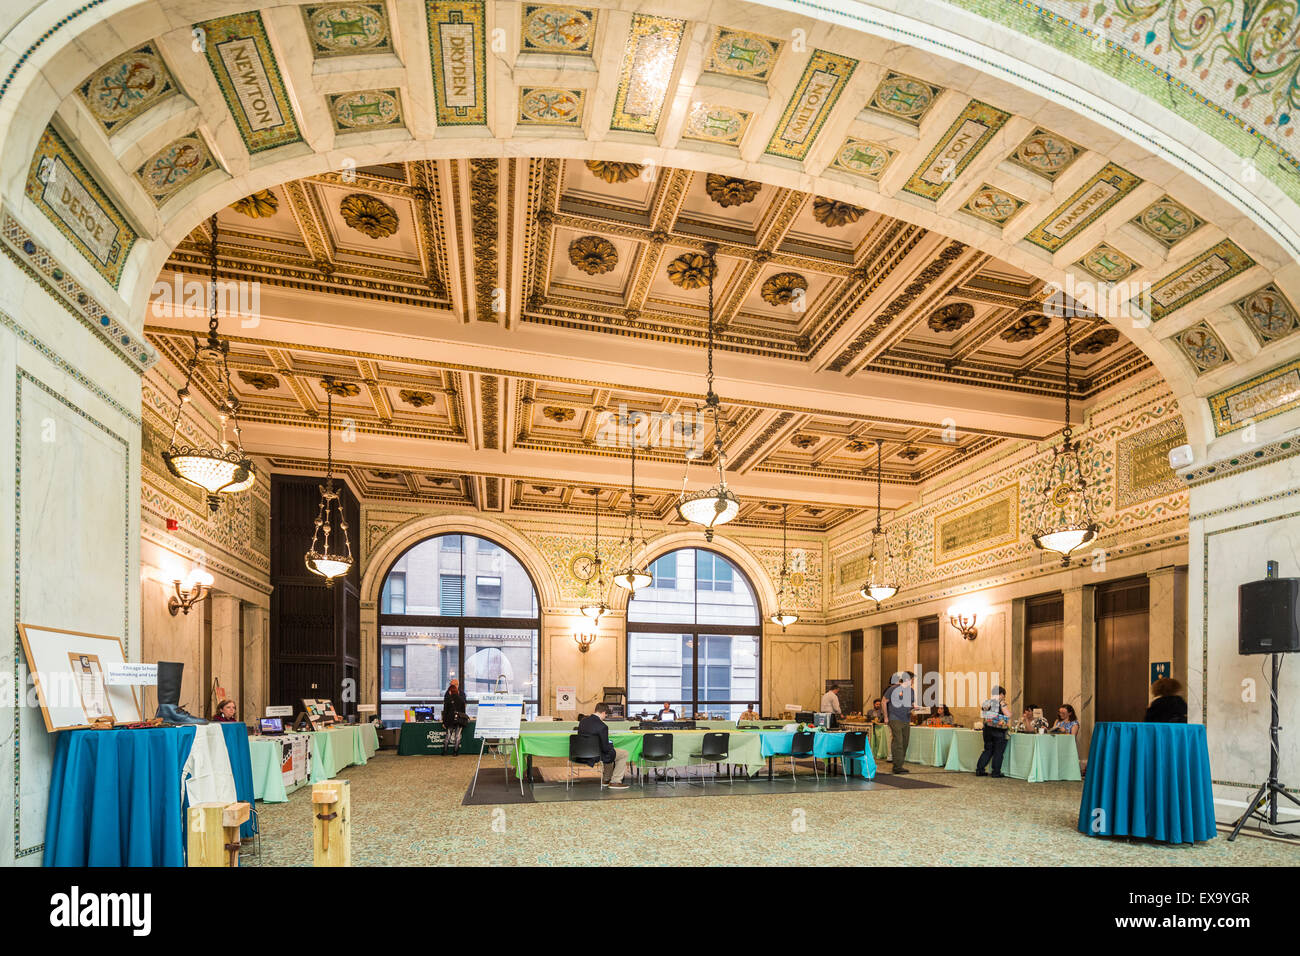 Chicago Cultural Center, formerly the Chicago Public Library, Chicago, Illinois, USA - Stock Image